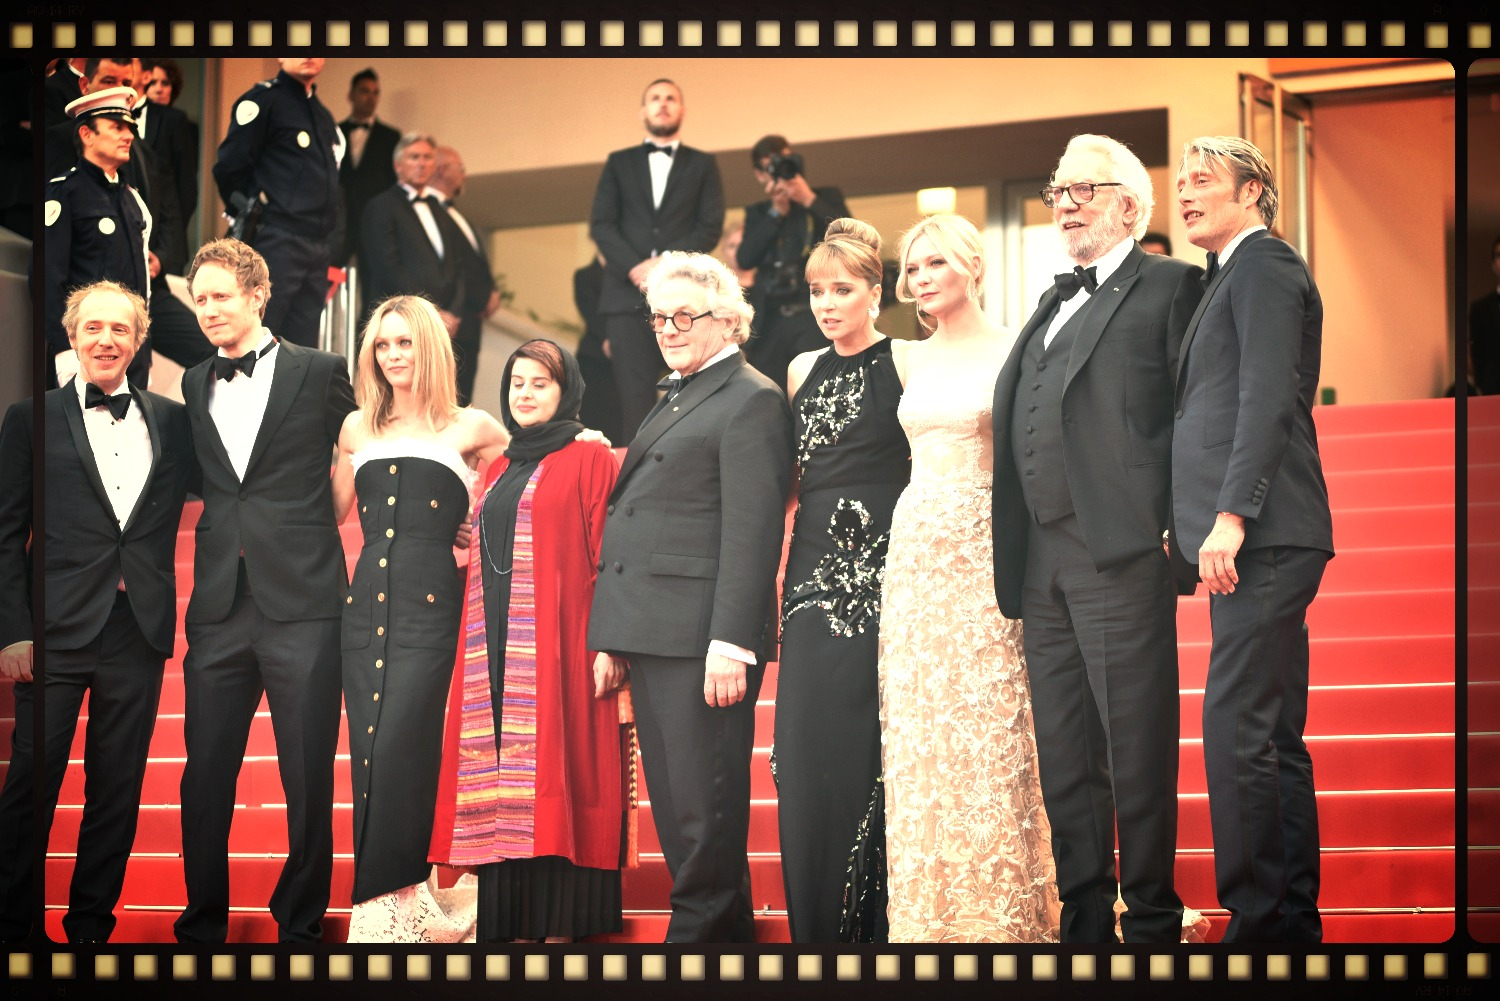 69° Festival del Cinema di Cannes